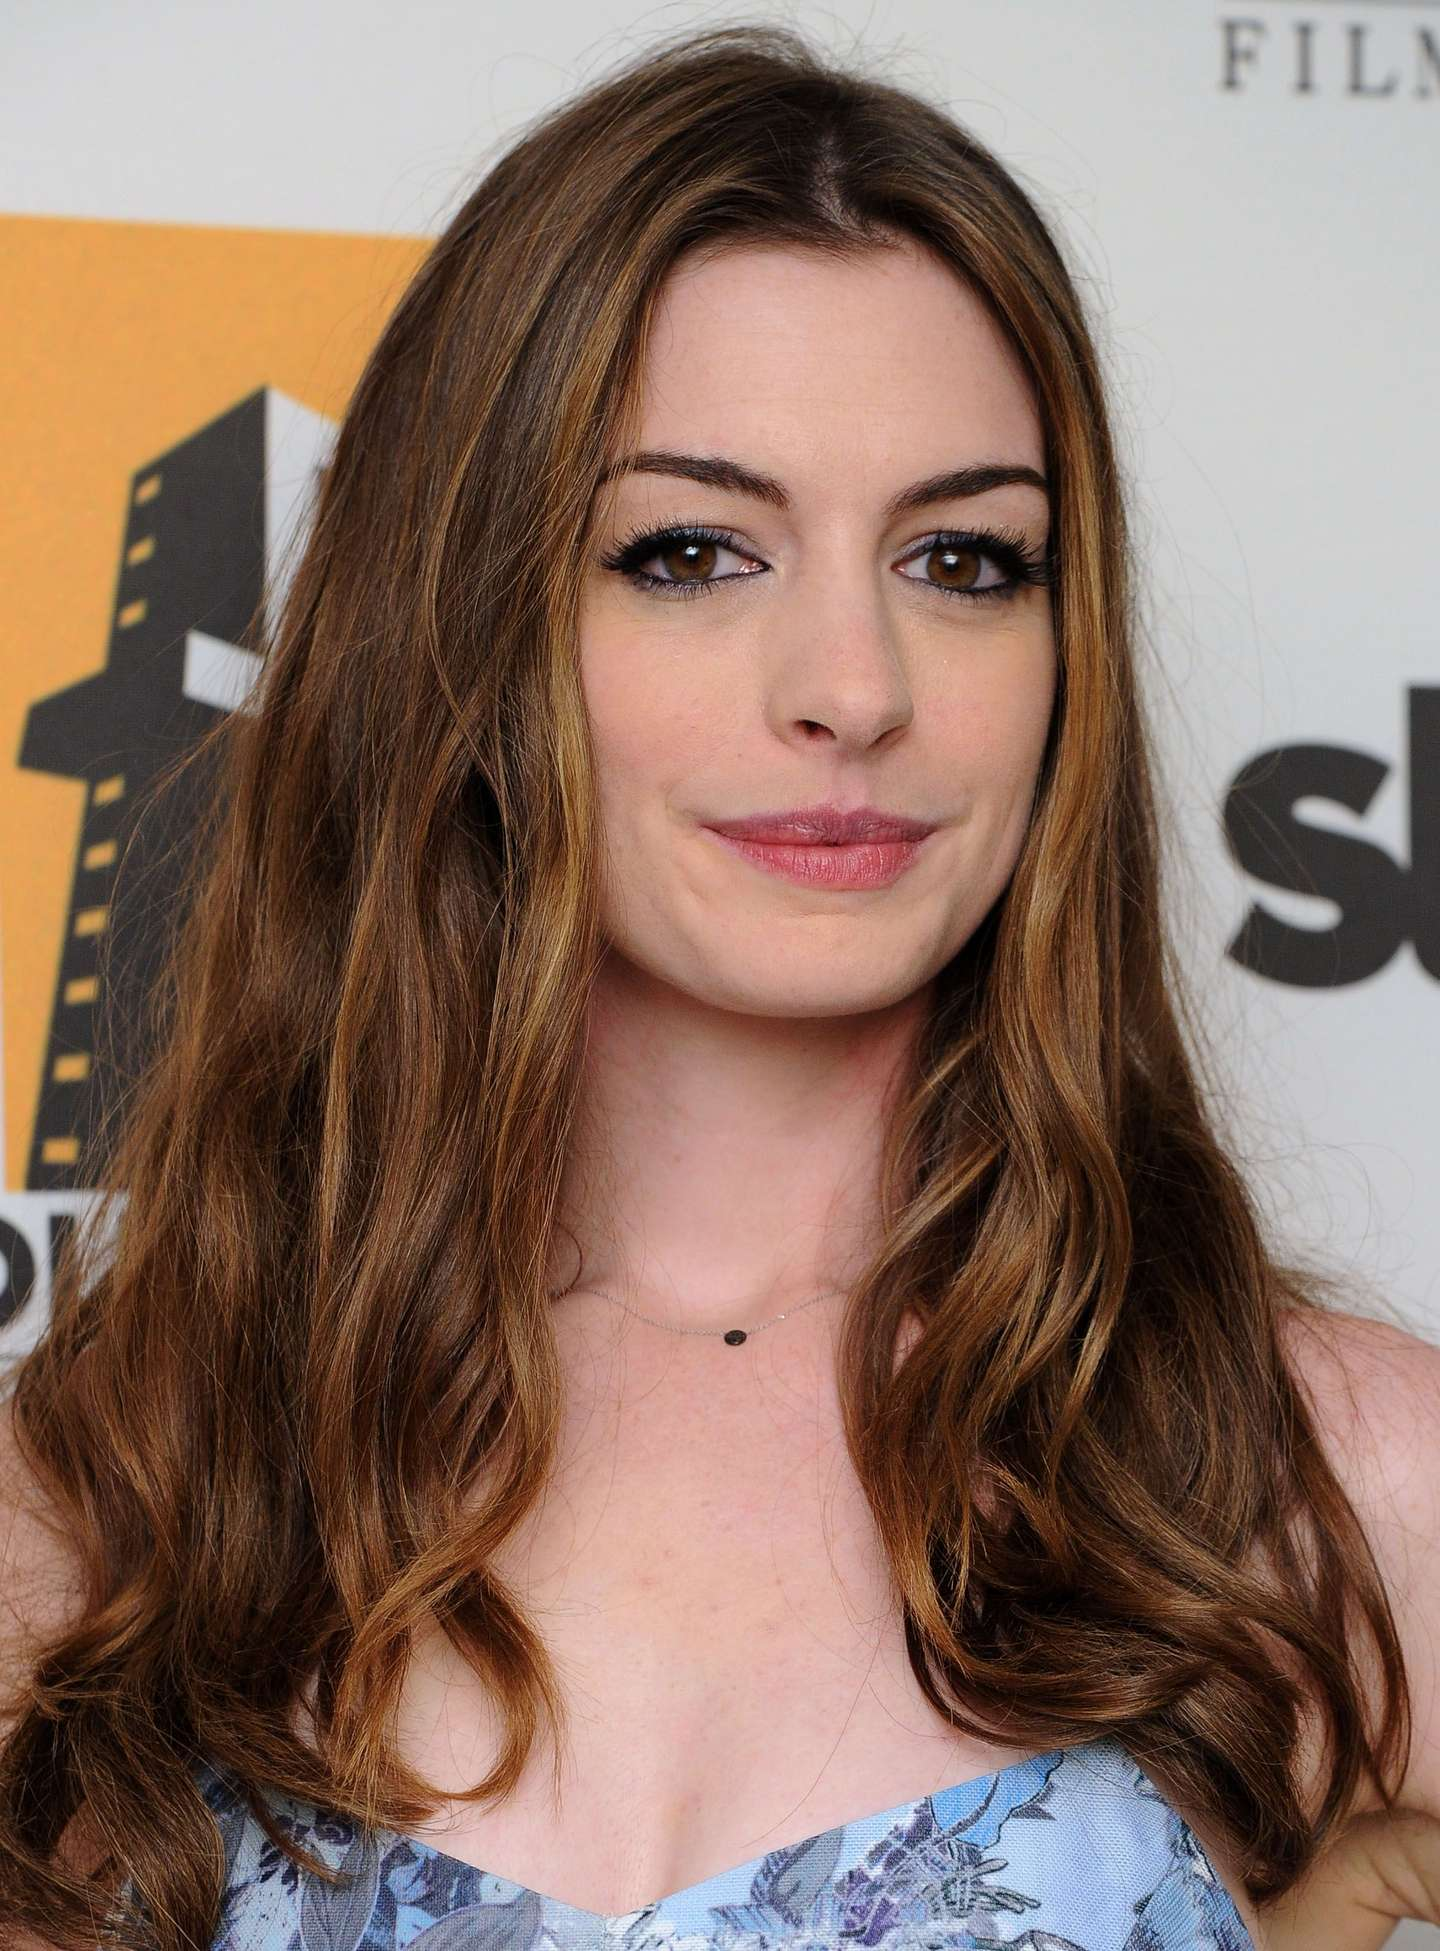 anne hathaway movies list imdb hathaway 2011 oscar red carpet anne hathaway 2011 academy awards imdb